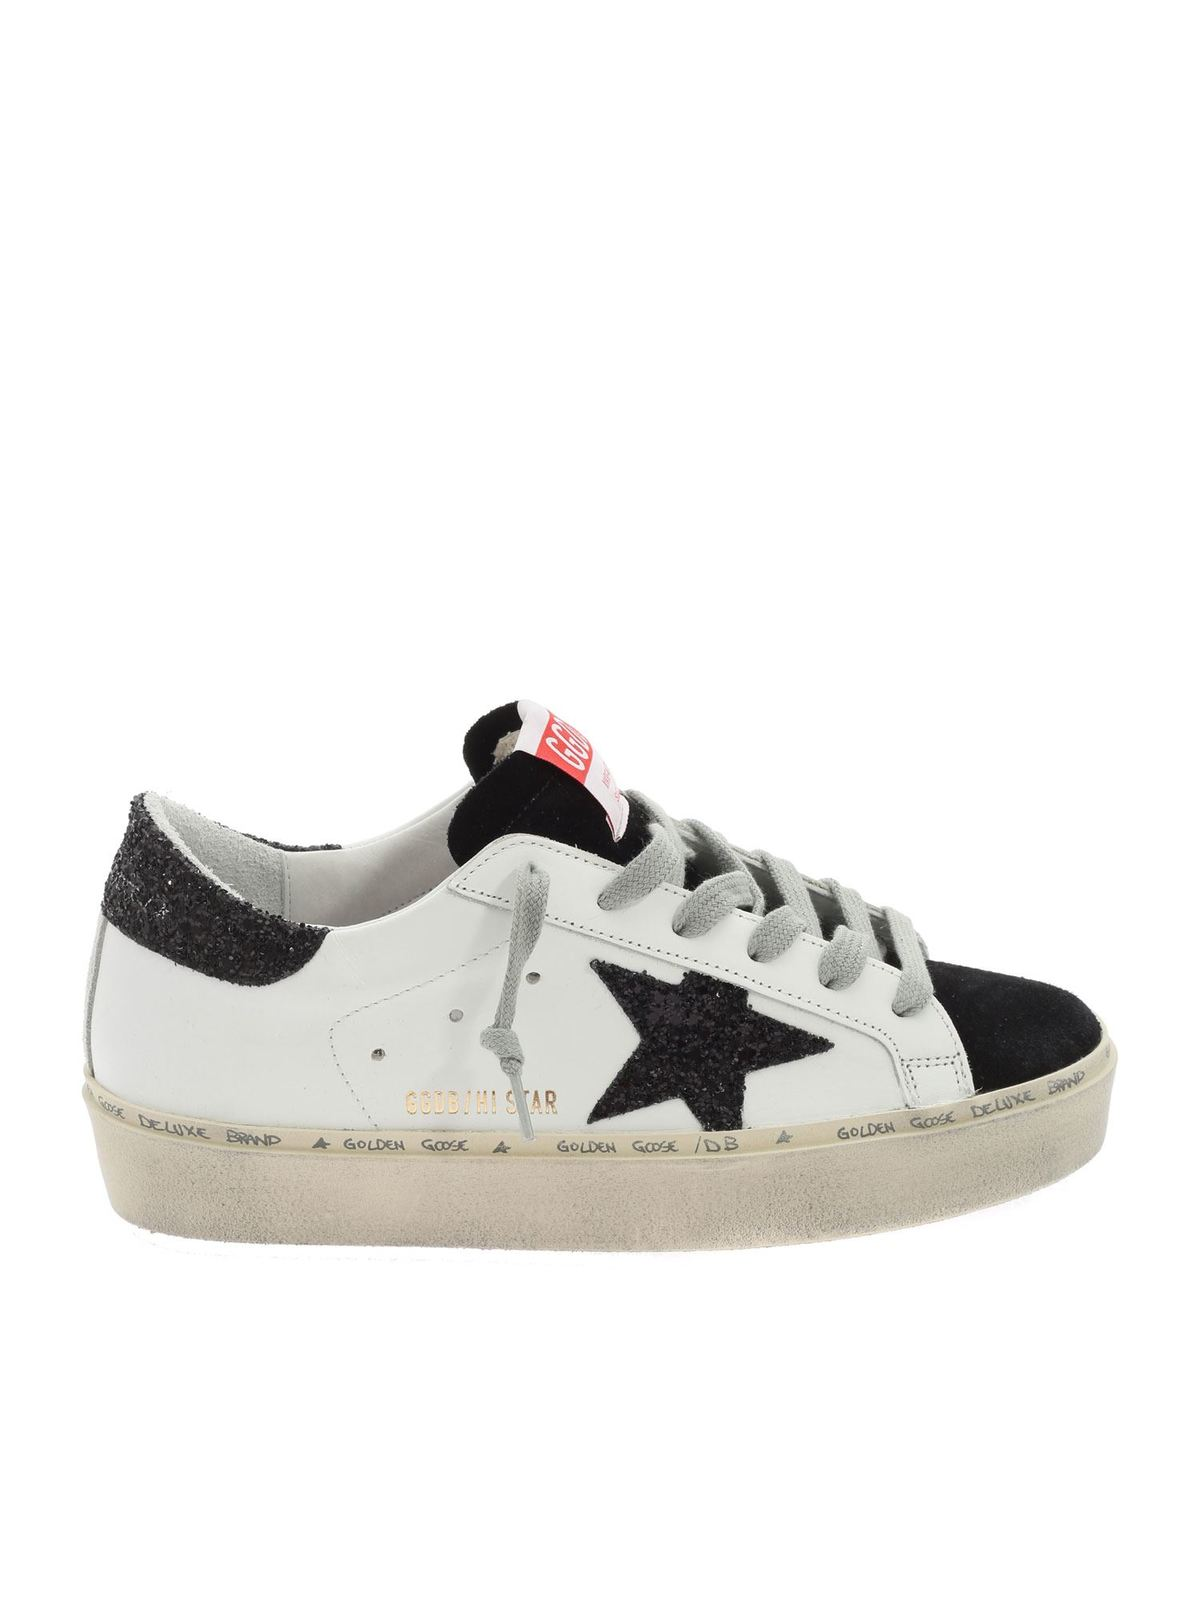 GOLDEN GOOSE HI STAR CLASSIC SNEAKERS IN WHITE AND BLACK